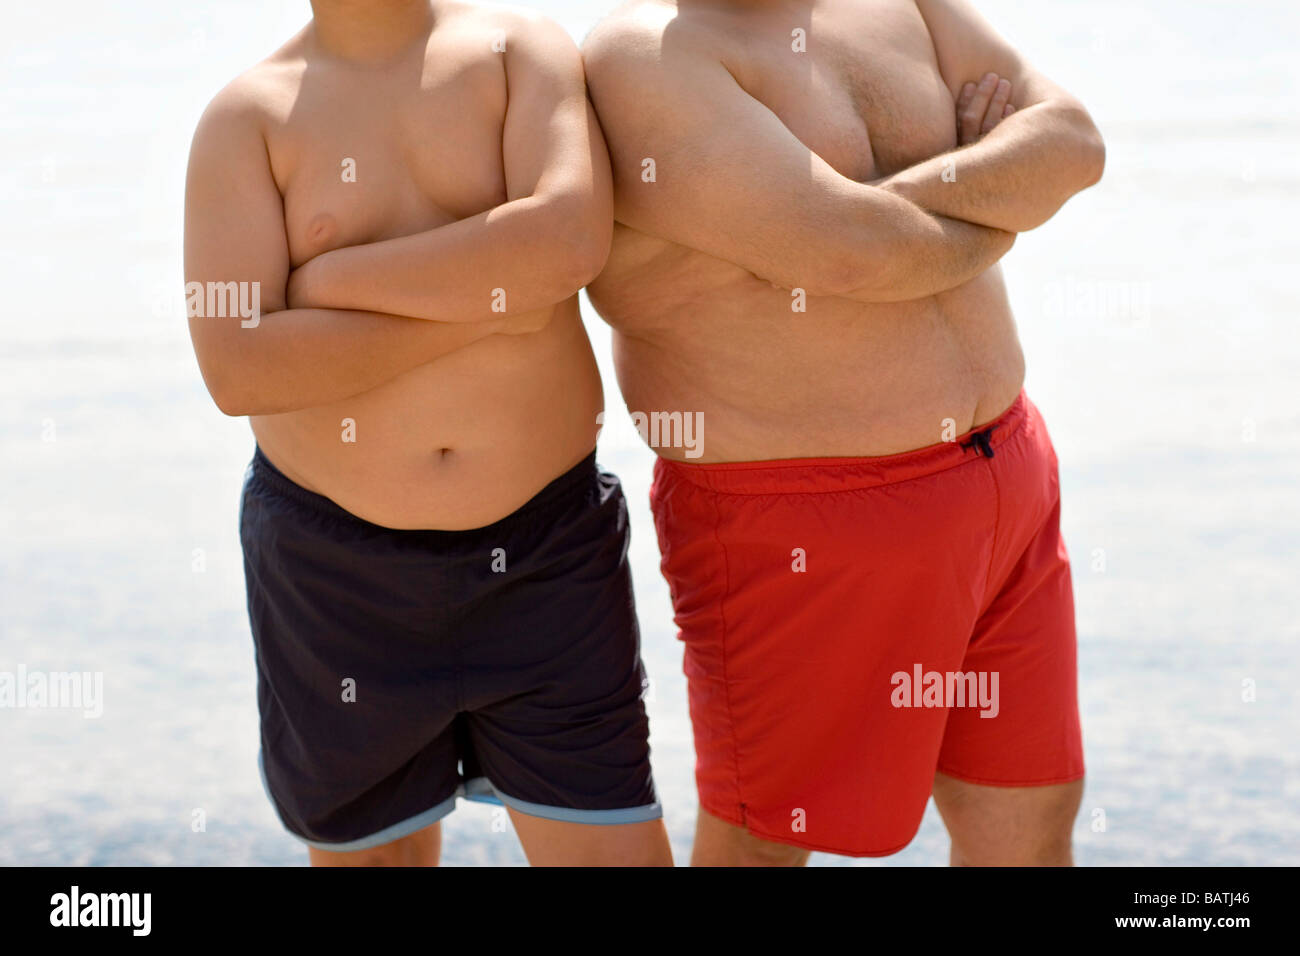 Overweight boy and man with their arms folded. - Stock Image